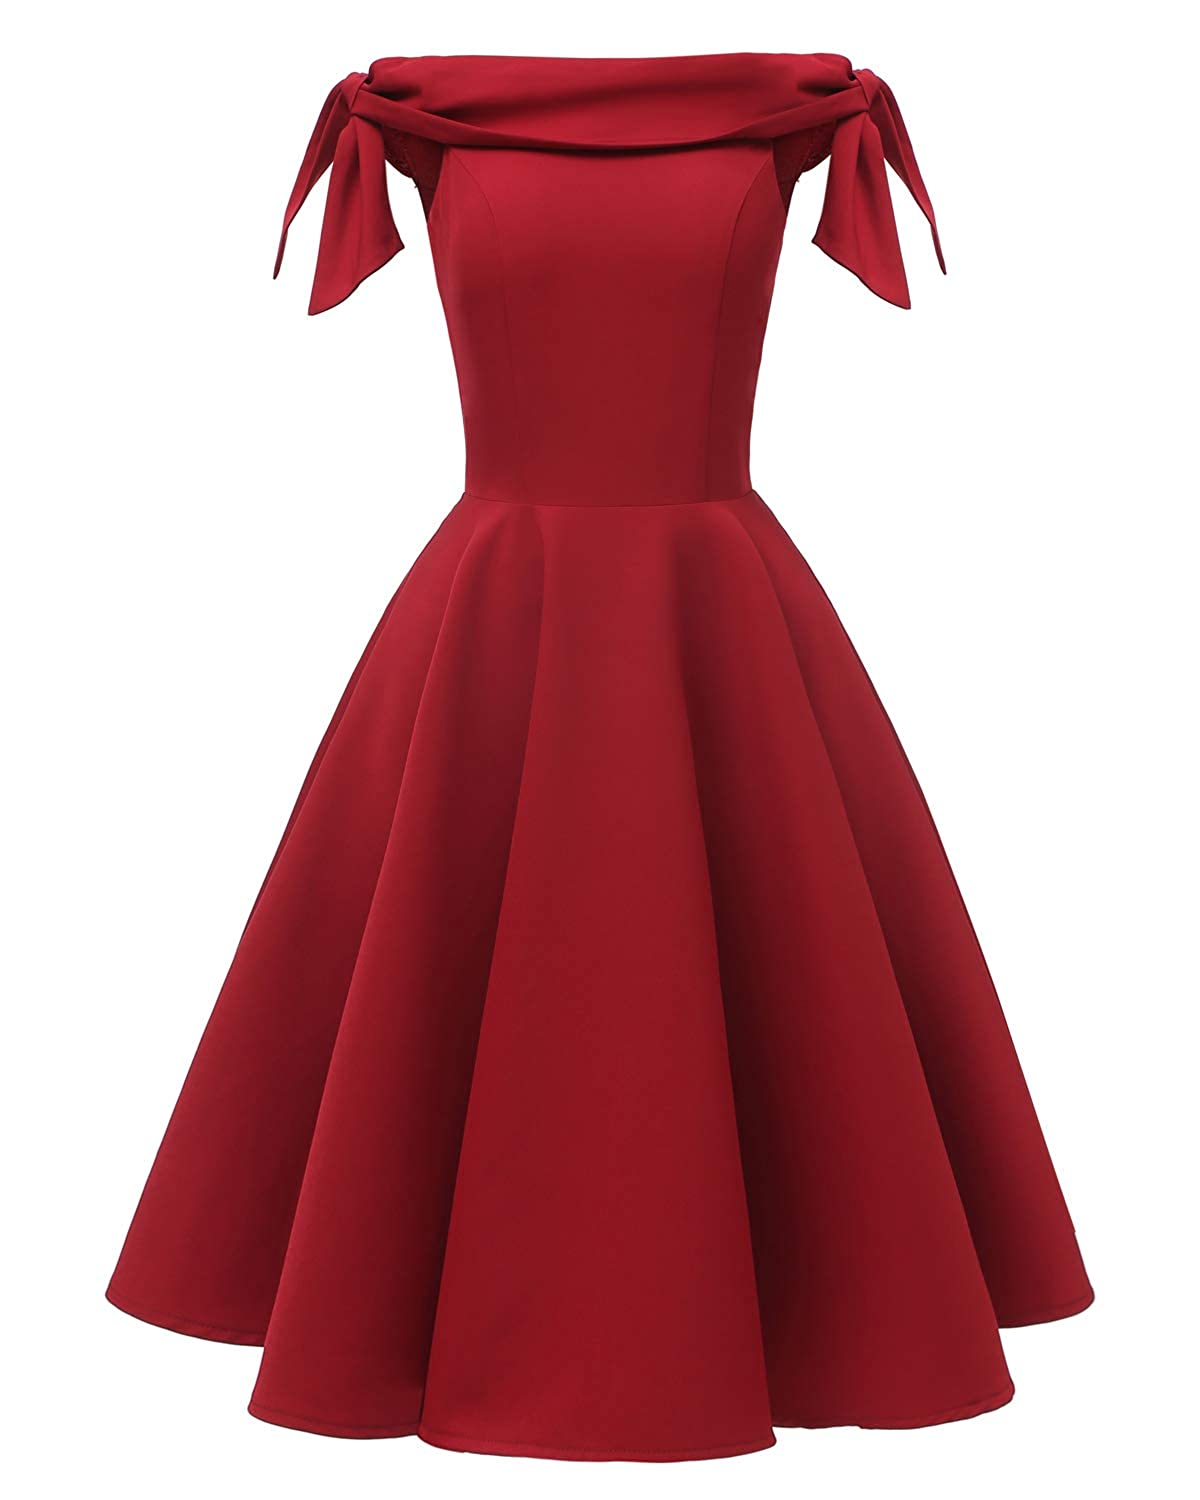 1960s Cocktail, Party, Prom, Evening Dresses Womens Off The Shoulder Vintage 1950s Bowknot Sleeve Cocktail Party Swing Dress Retro Rockabilly Evening Wedding Prom Dress $42.99 AT vintagedancer.com